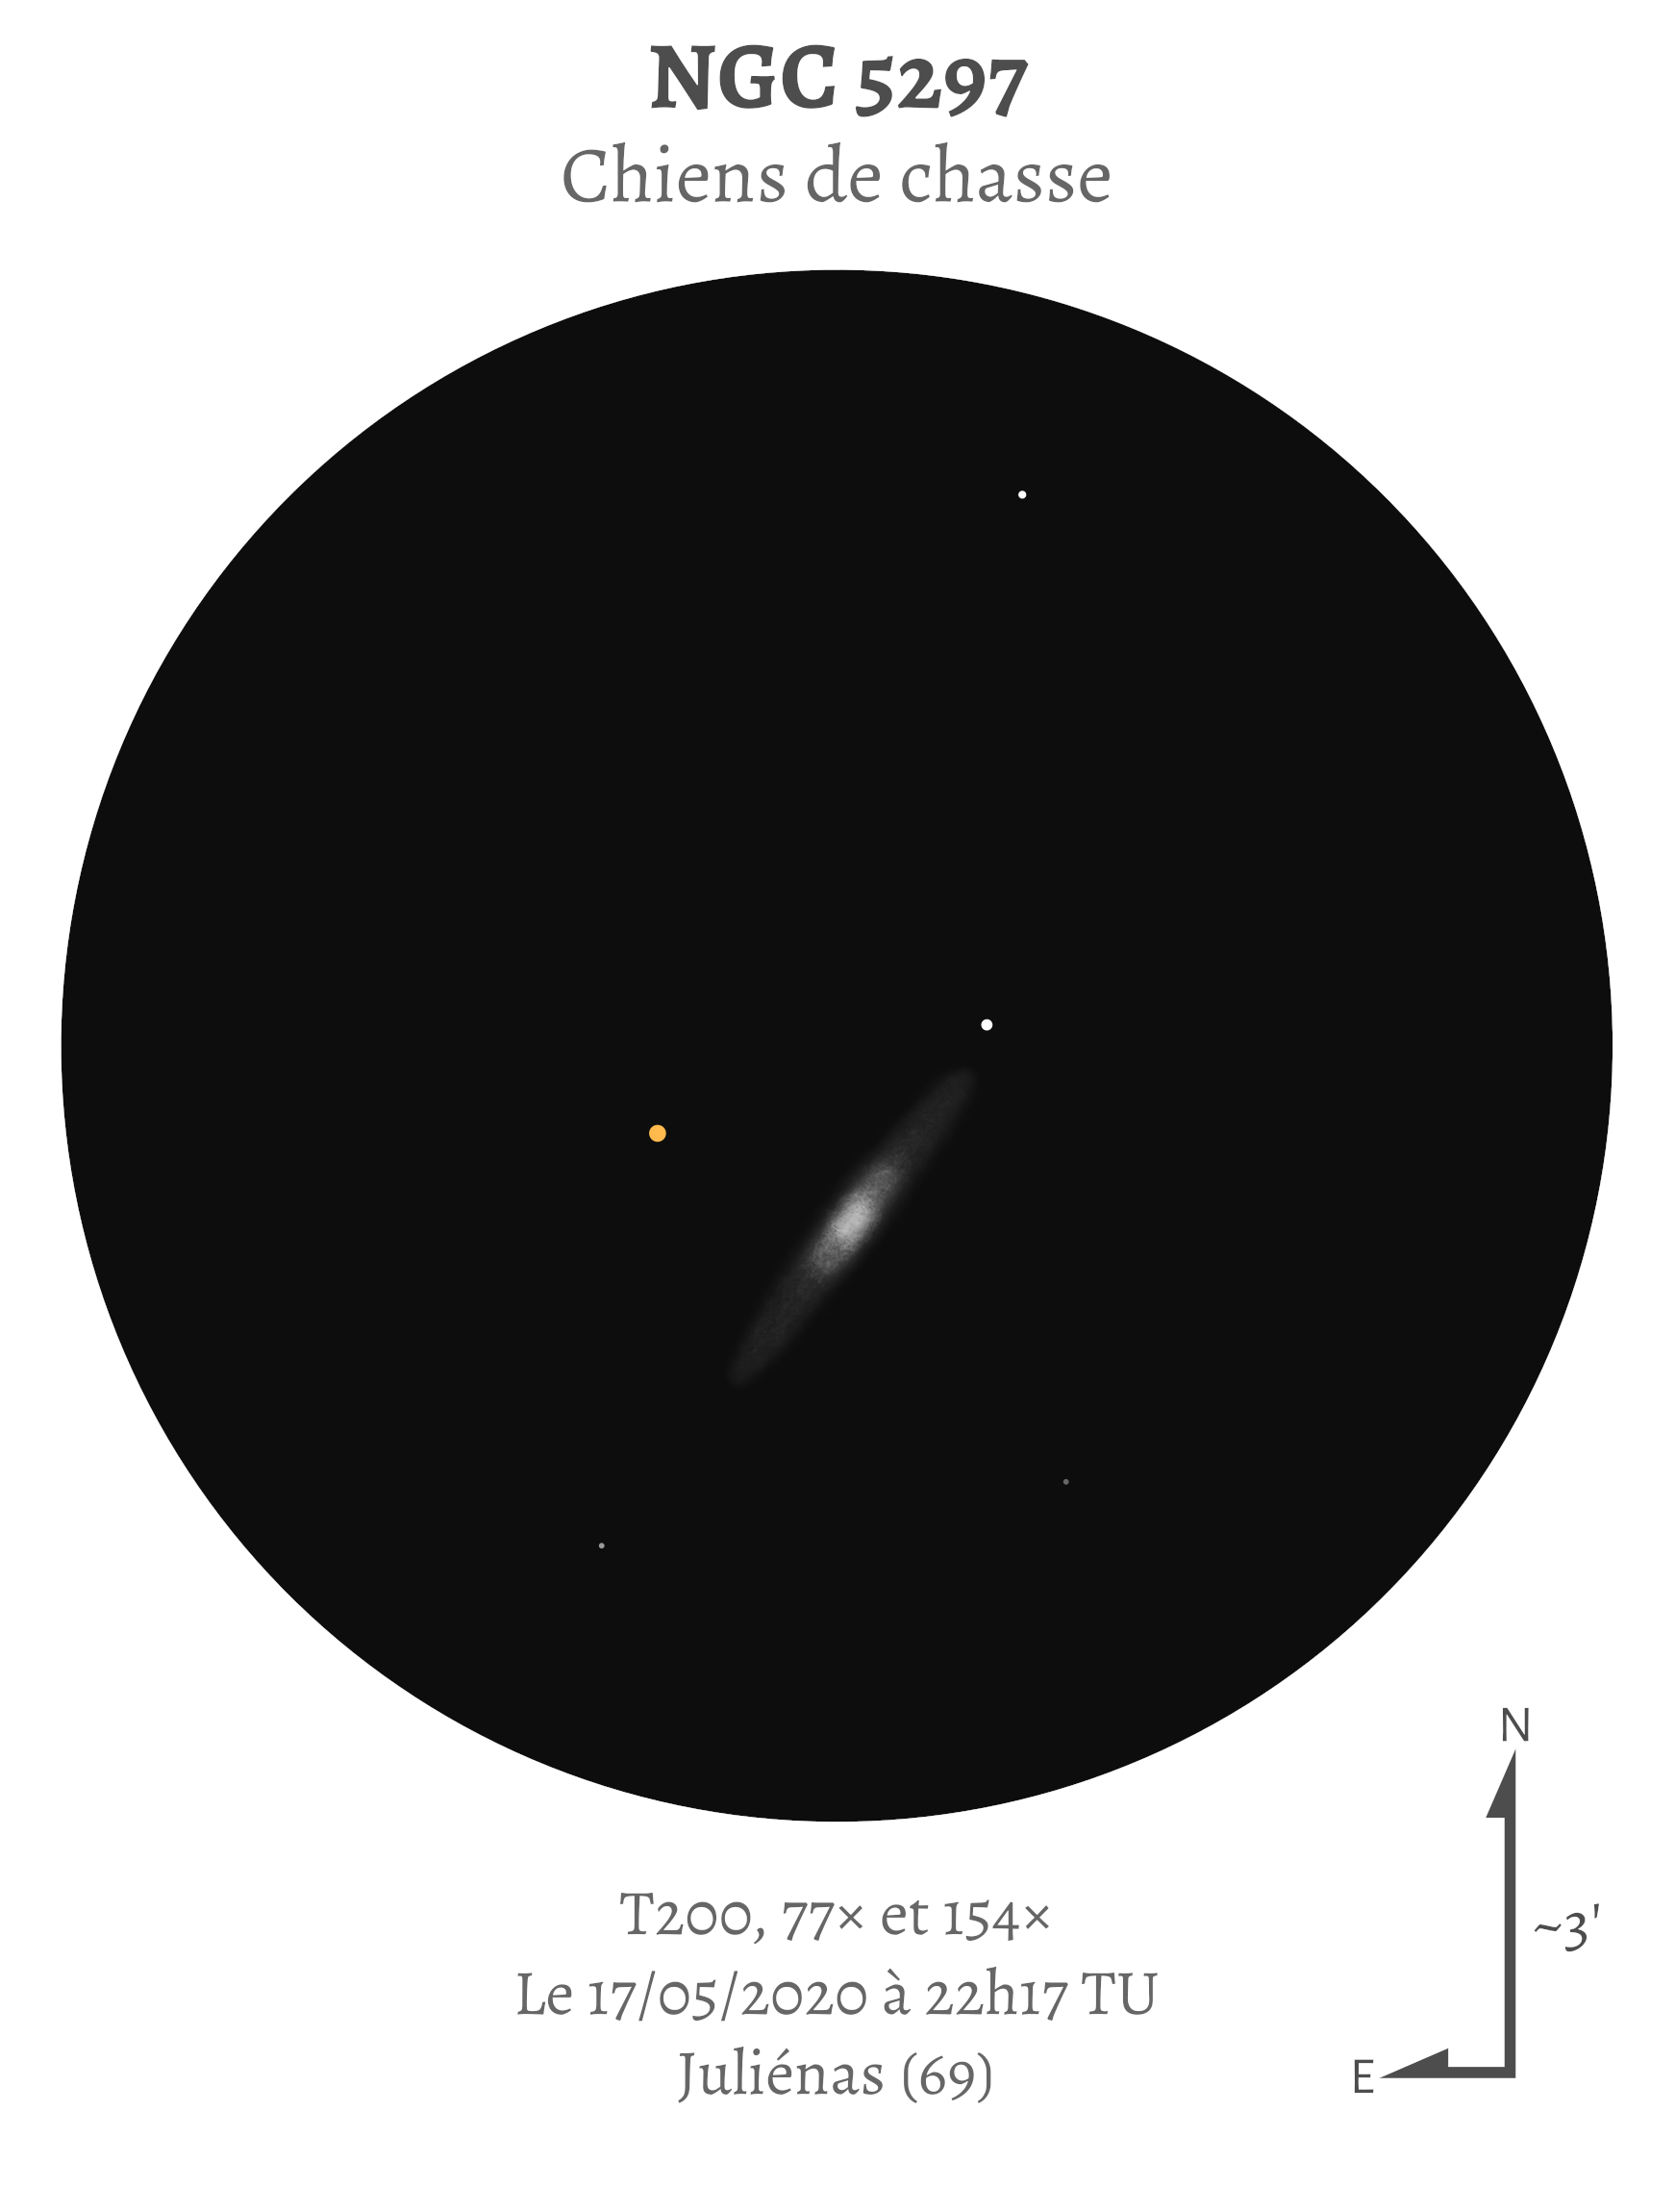 large.5ec3f013104b6_NGC5297-T200.png.393cdd8a93d9faf02efe1dece87eaa40.png